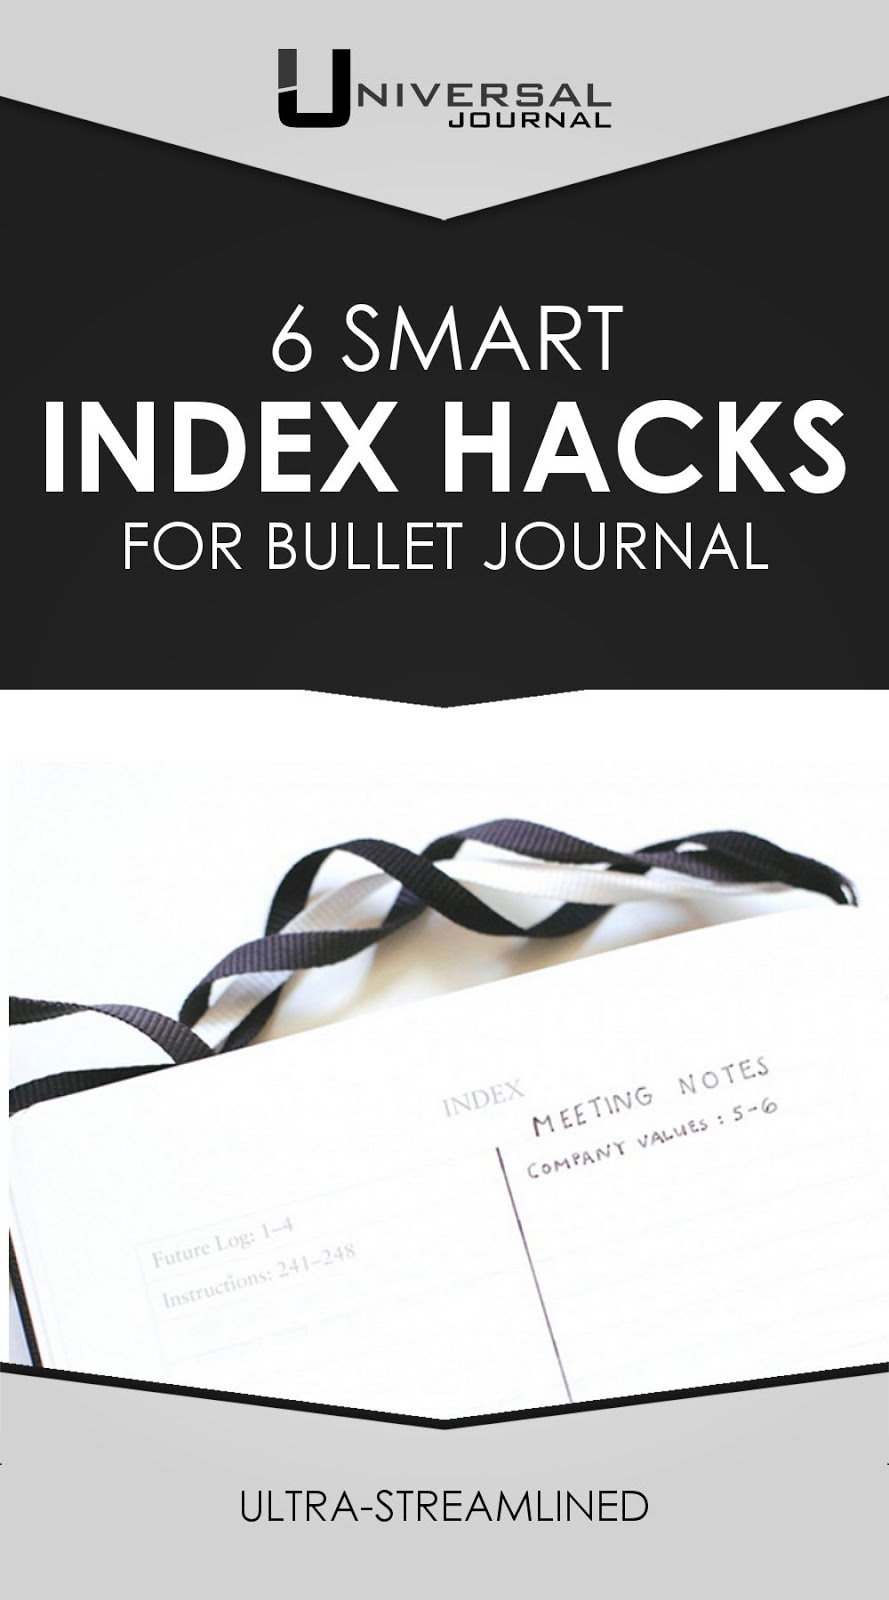 6 smart index hacks for bullet journal